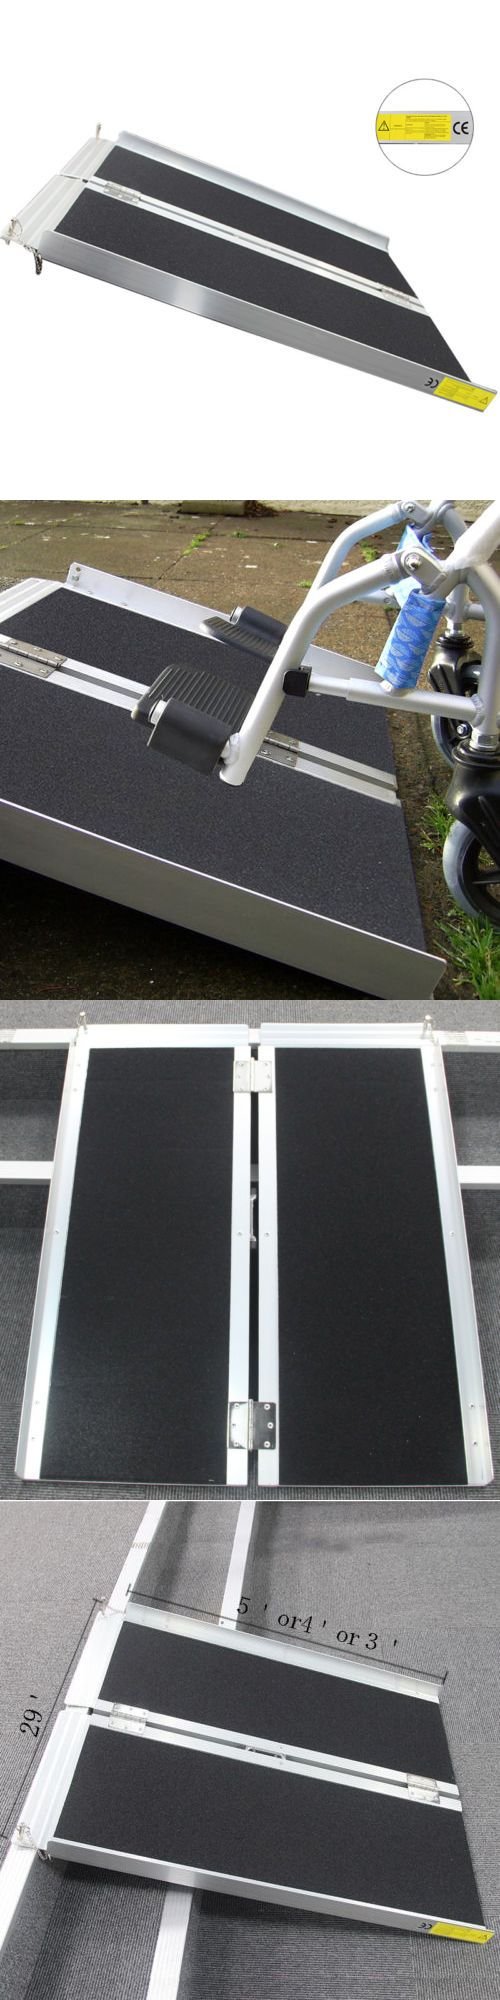 Access Ramps: 5 Wheelchair Ramp | Scooter Ramp | Literamp Portable Handicap Ramps -> BUY IT NOW ONLY: $103.9 on eBay!